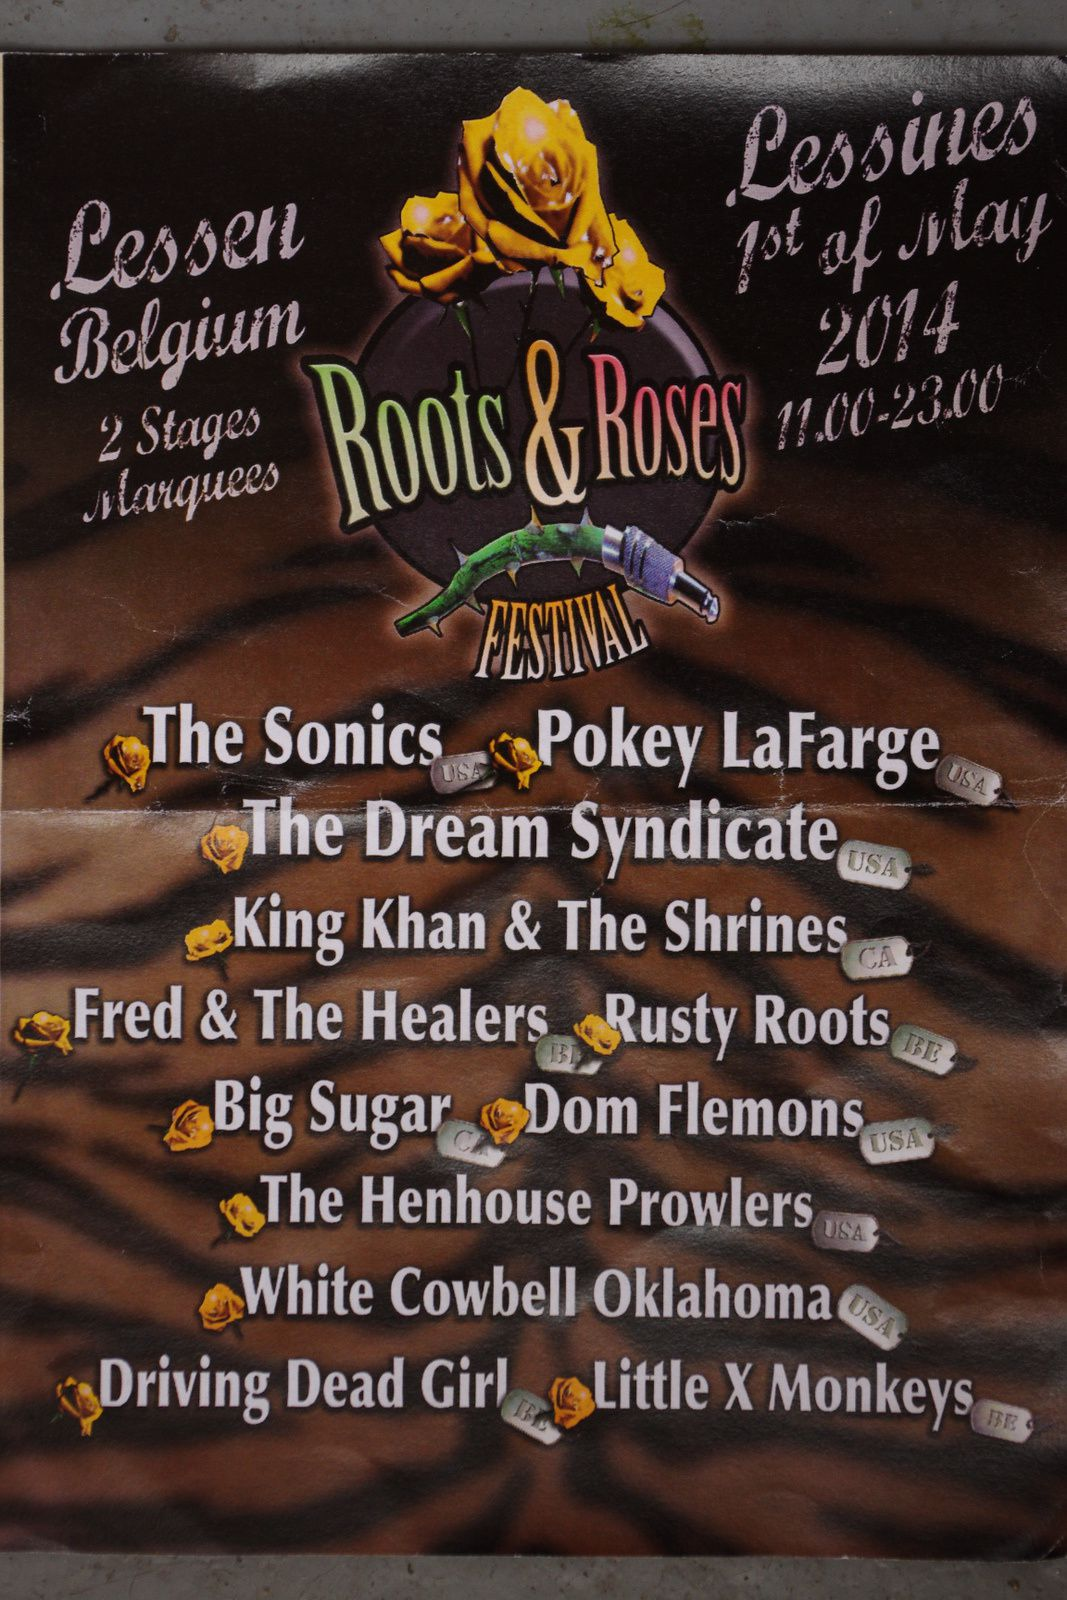 Roots & Roses Festival 2014